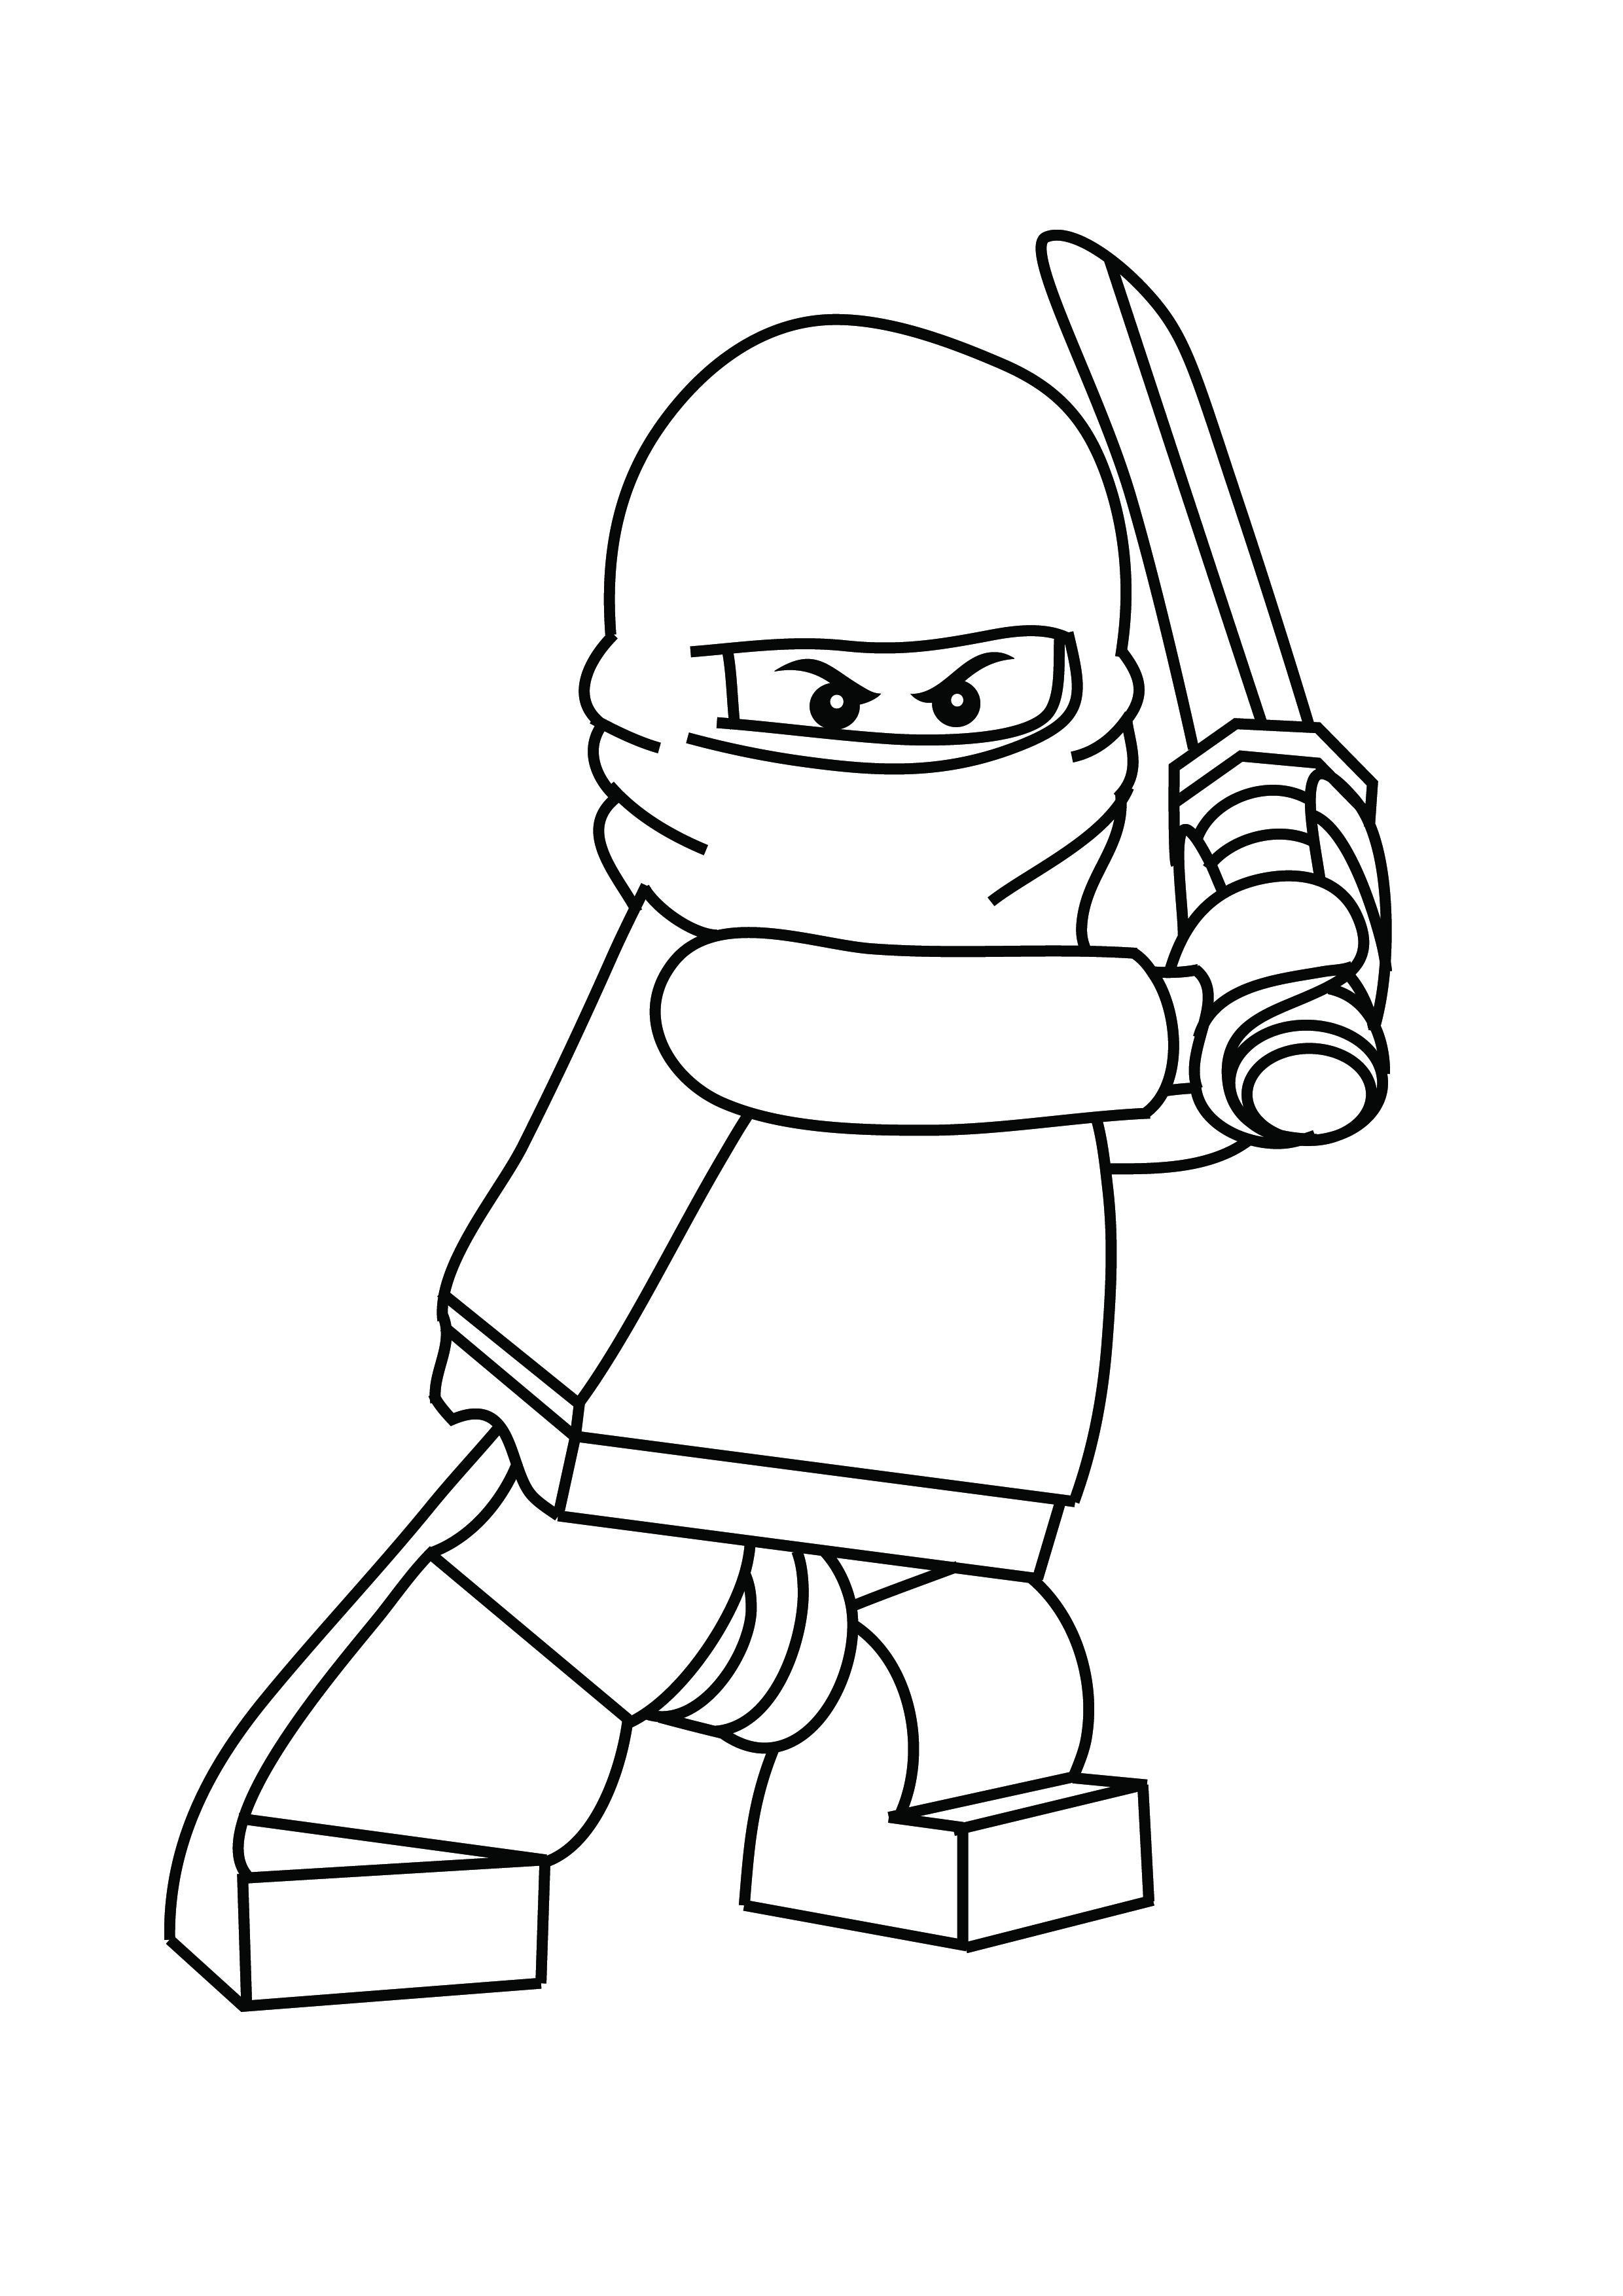 Coloring Pages Lego Figure Coloring Pages lego minifigure coloring pages eassume com eassume